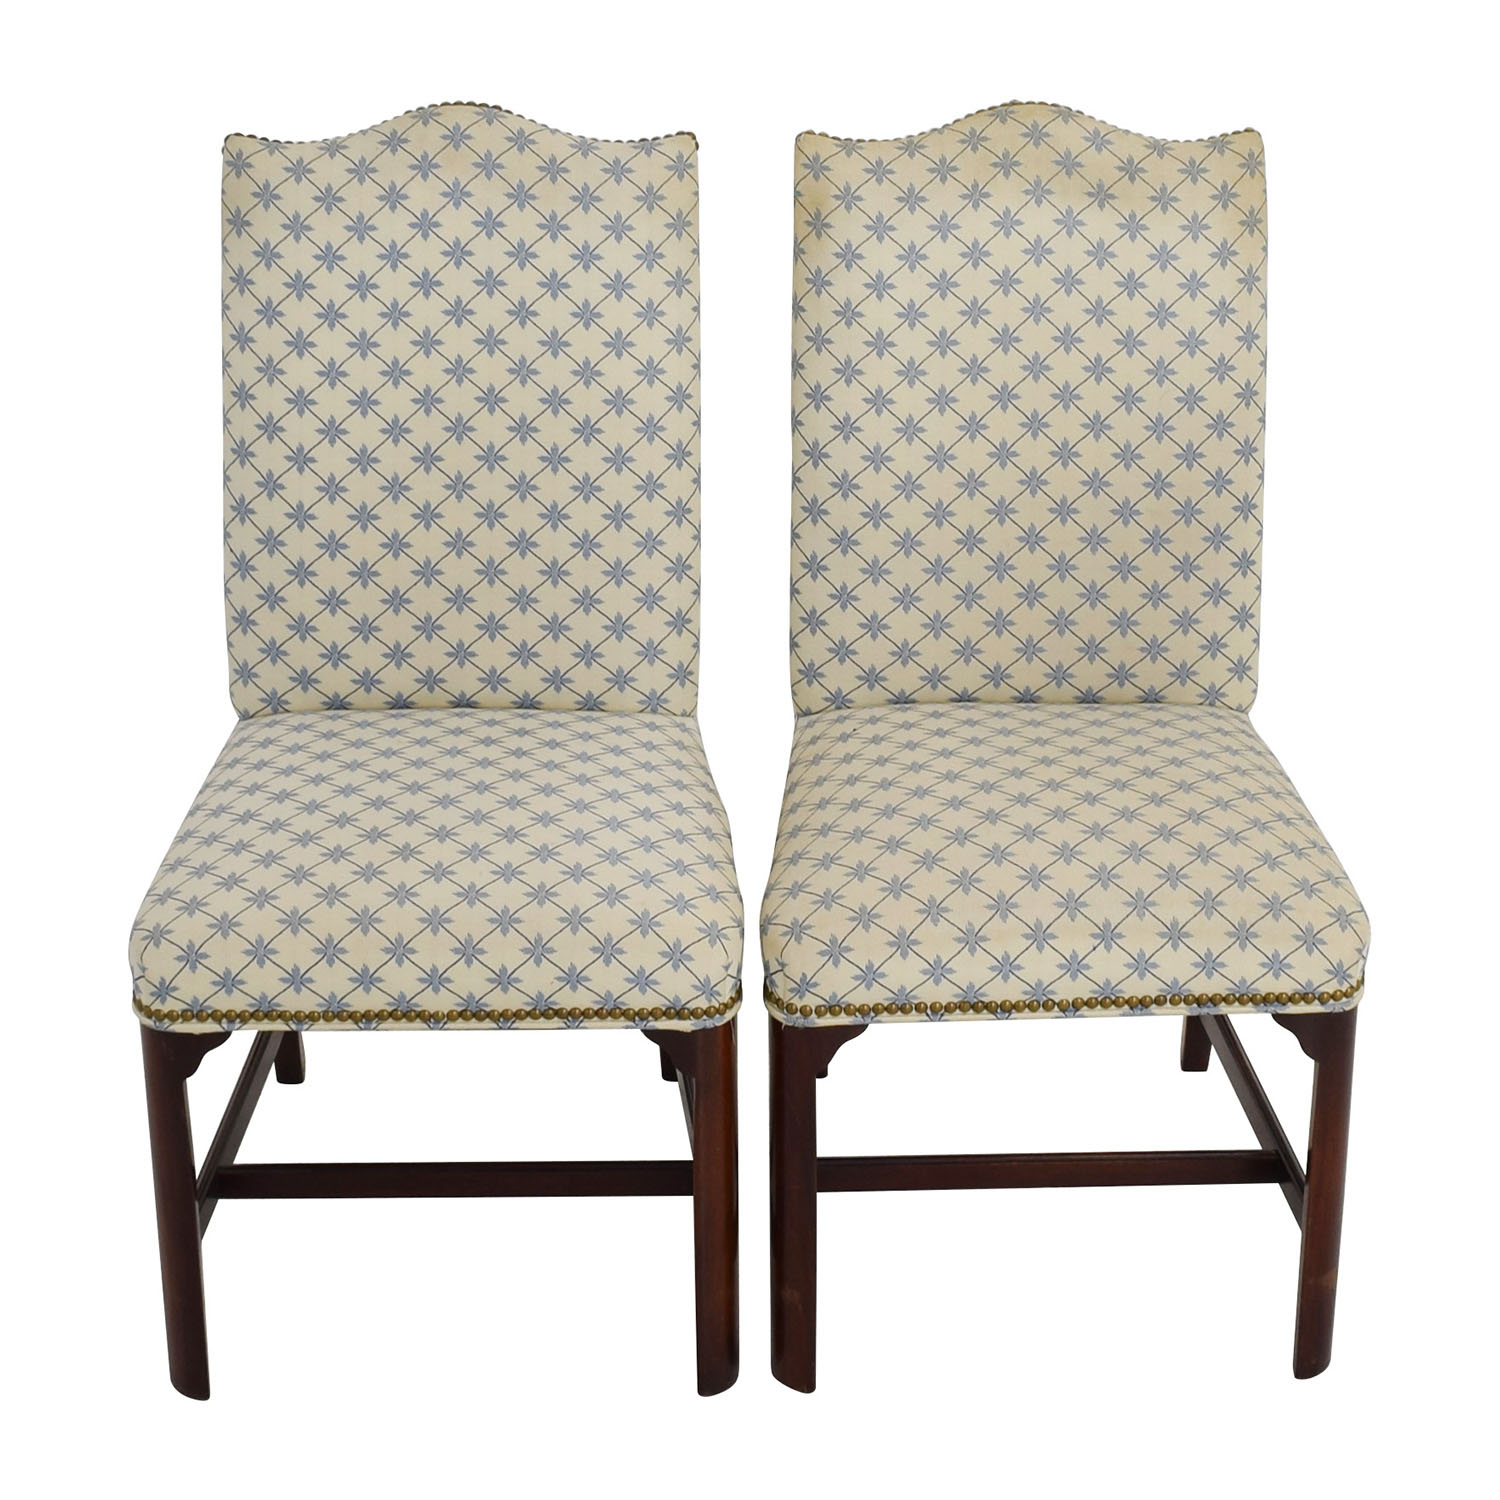 hickory chair furniture vintage chairs for sale 88 off bespoke upholstered